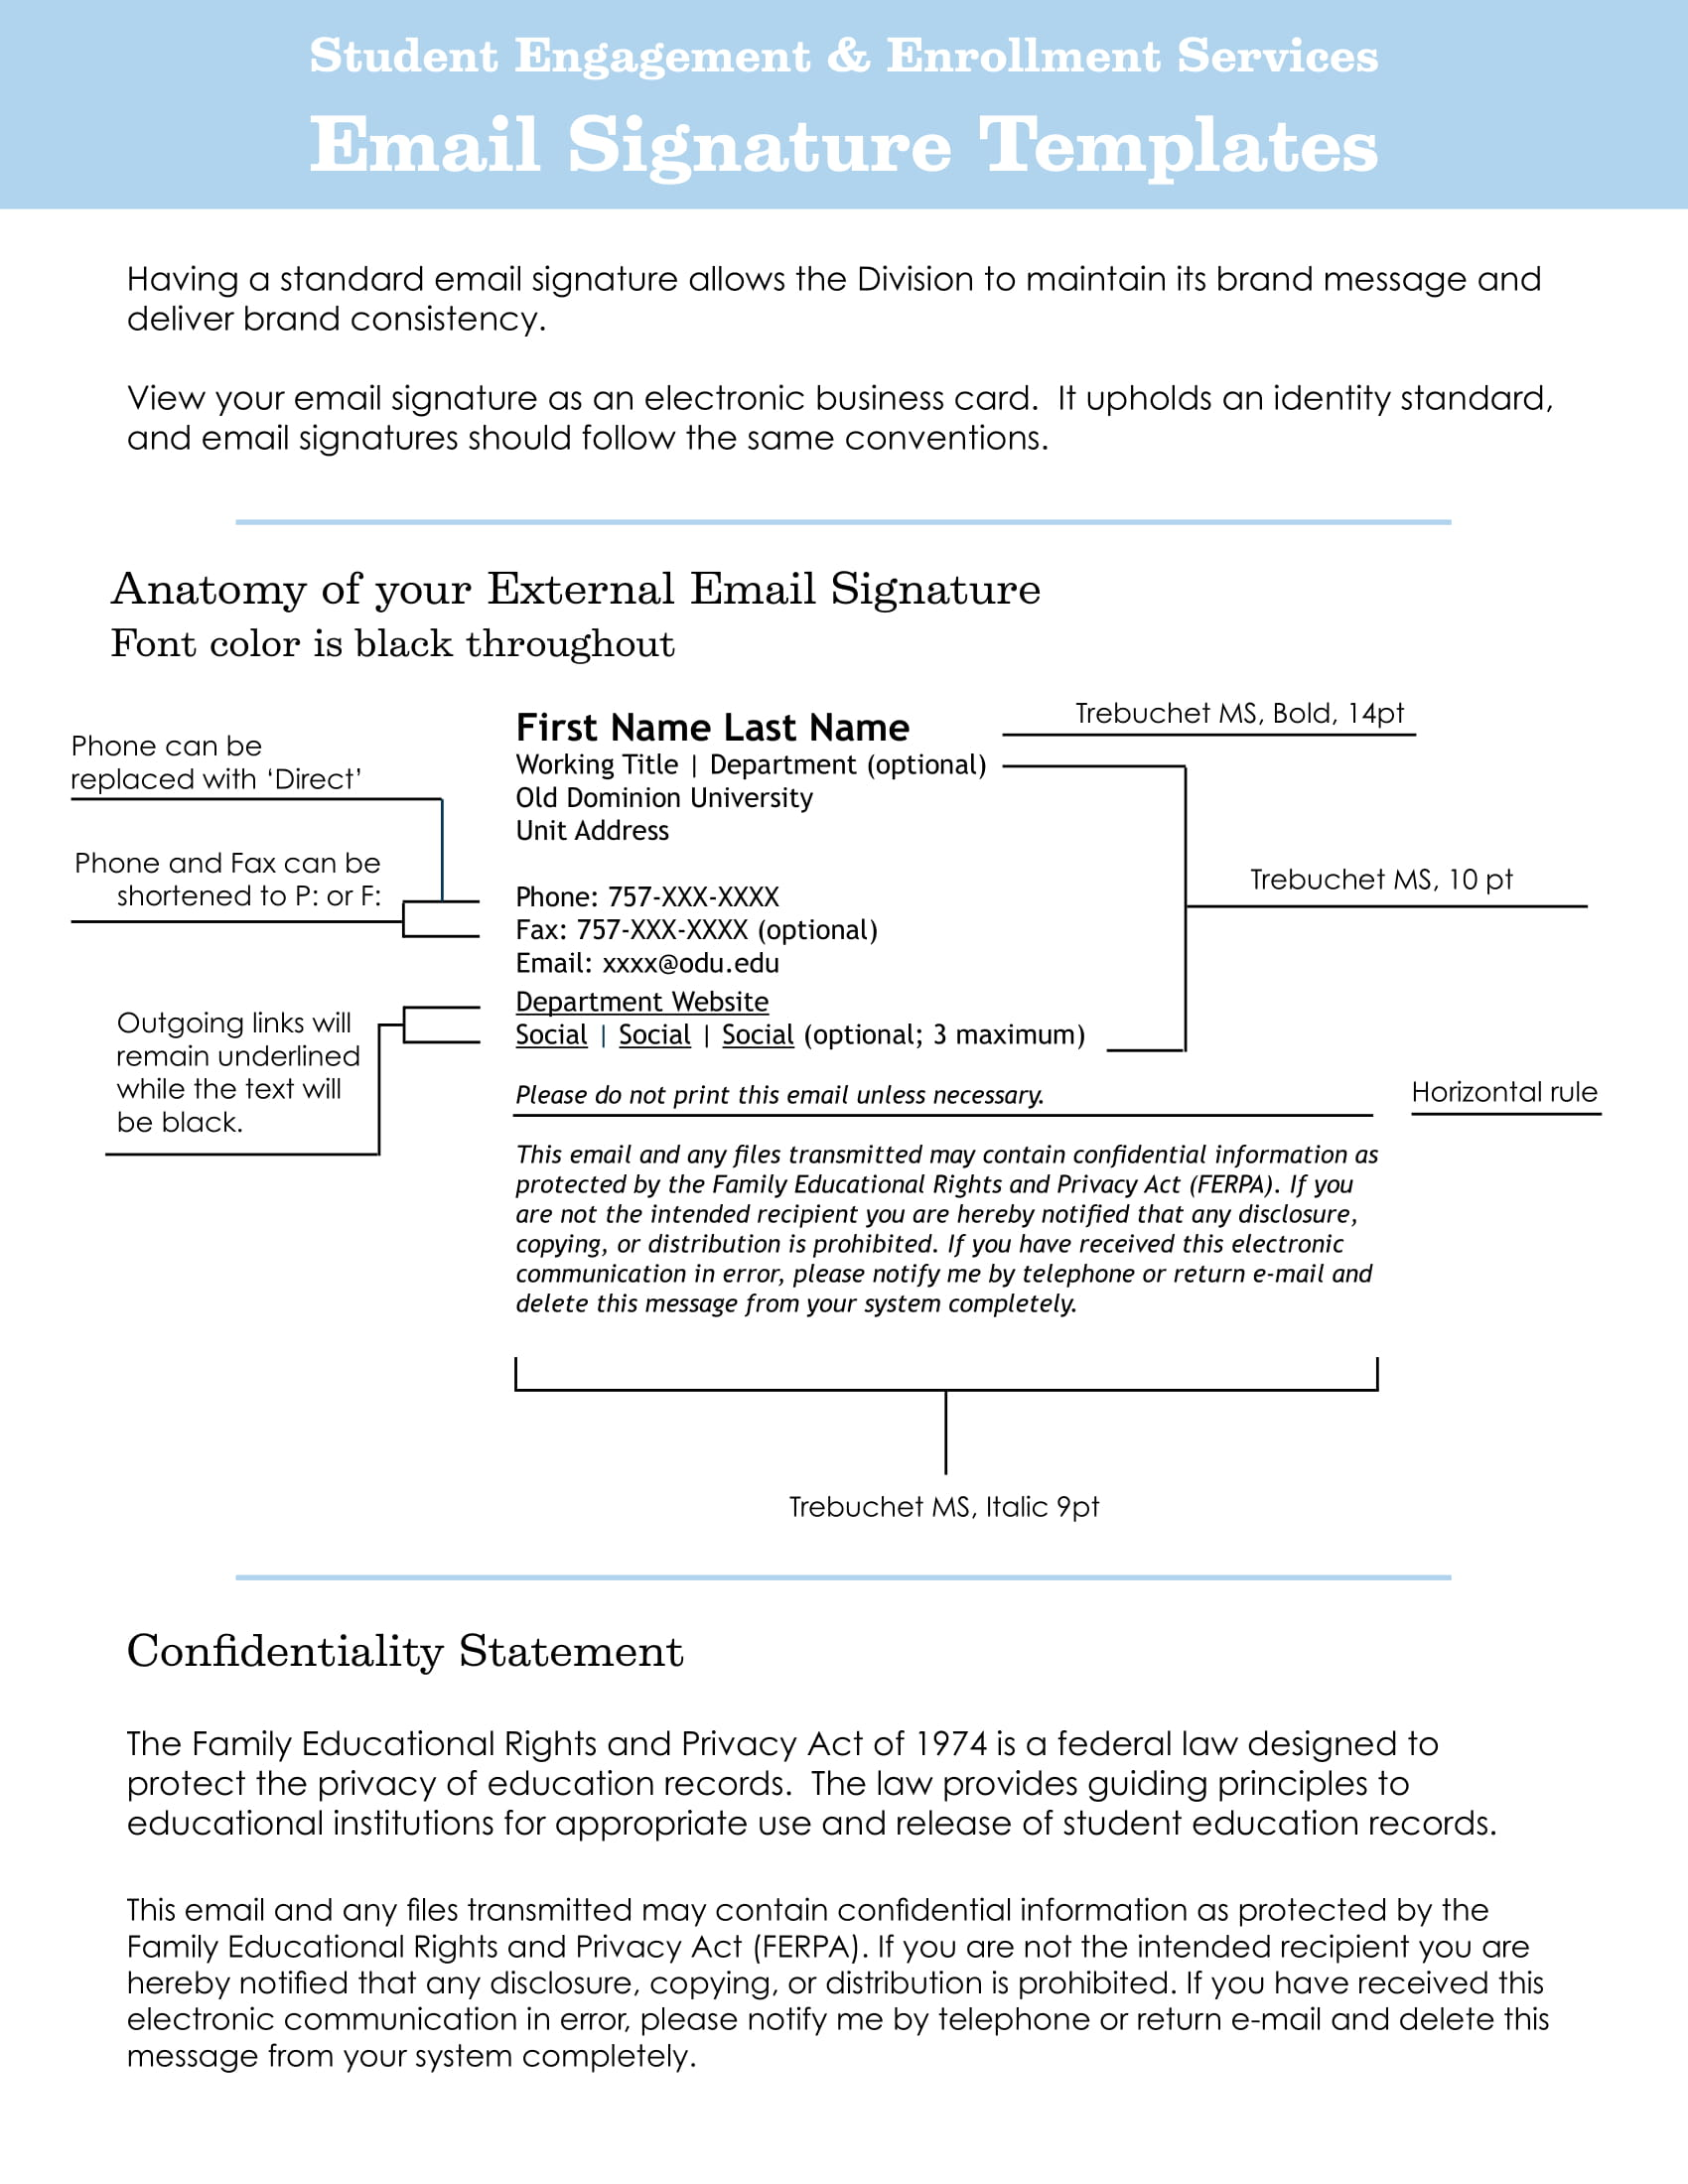 student engagement and enrollment services email signature template example 1